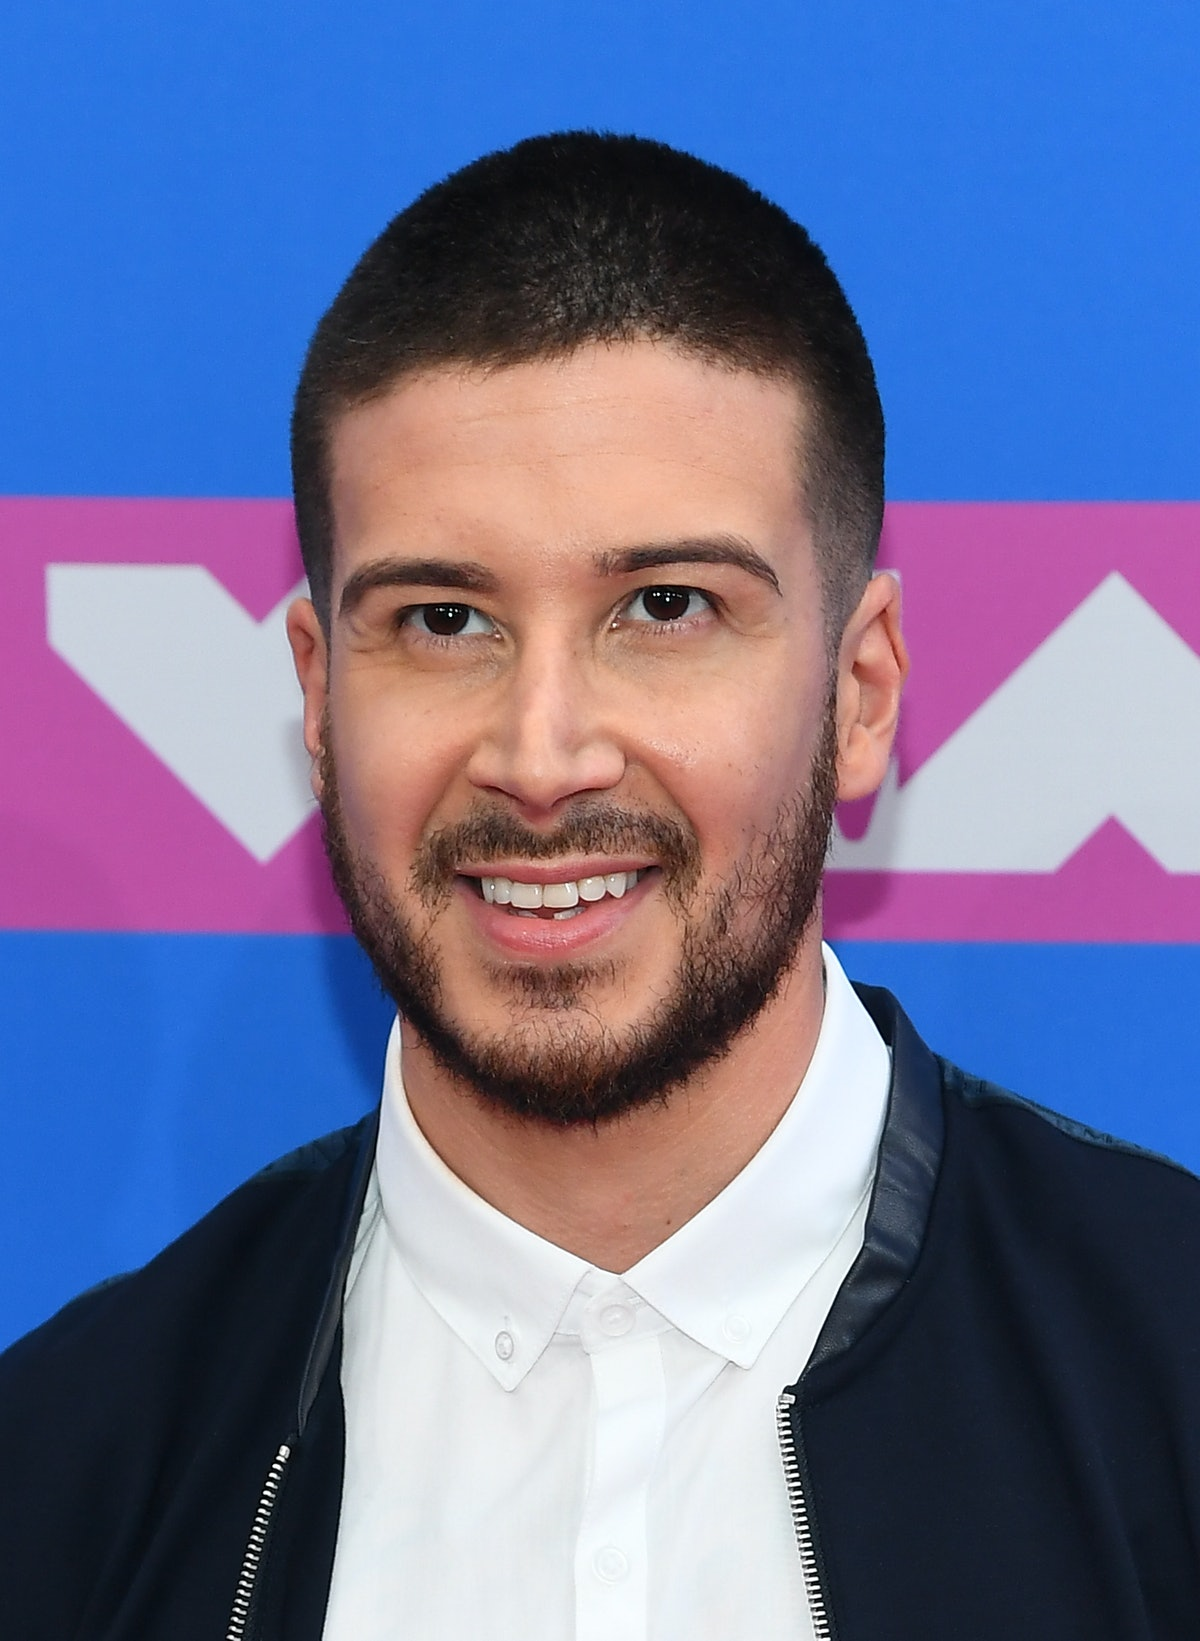 Is Vinny From 'Jersey Shore' Dating Anyone Now? The 'Double Shot At Love' Star Might Have Found His Match